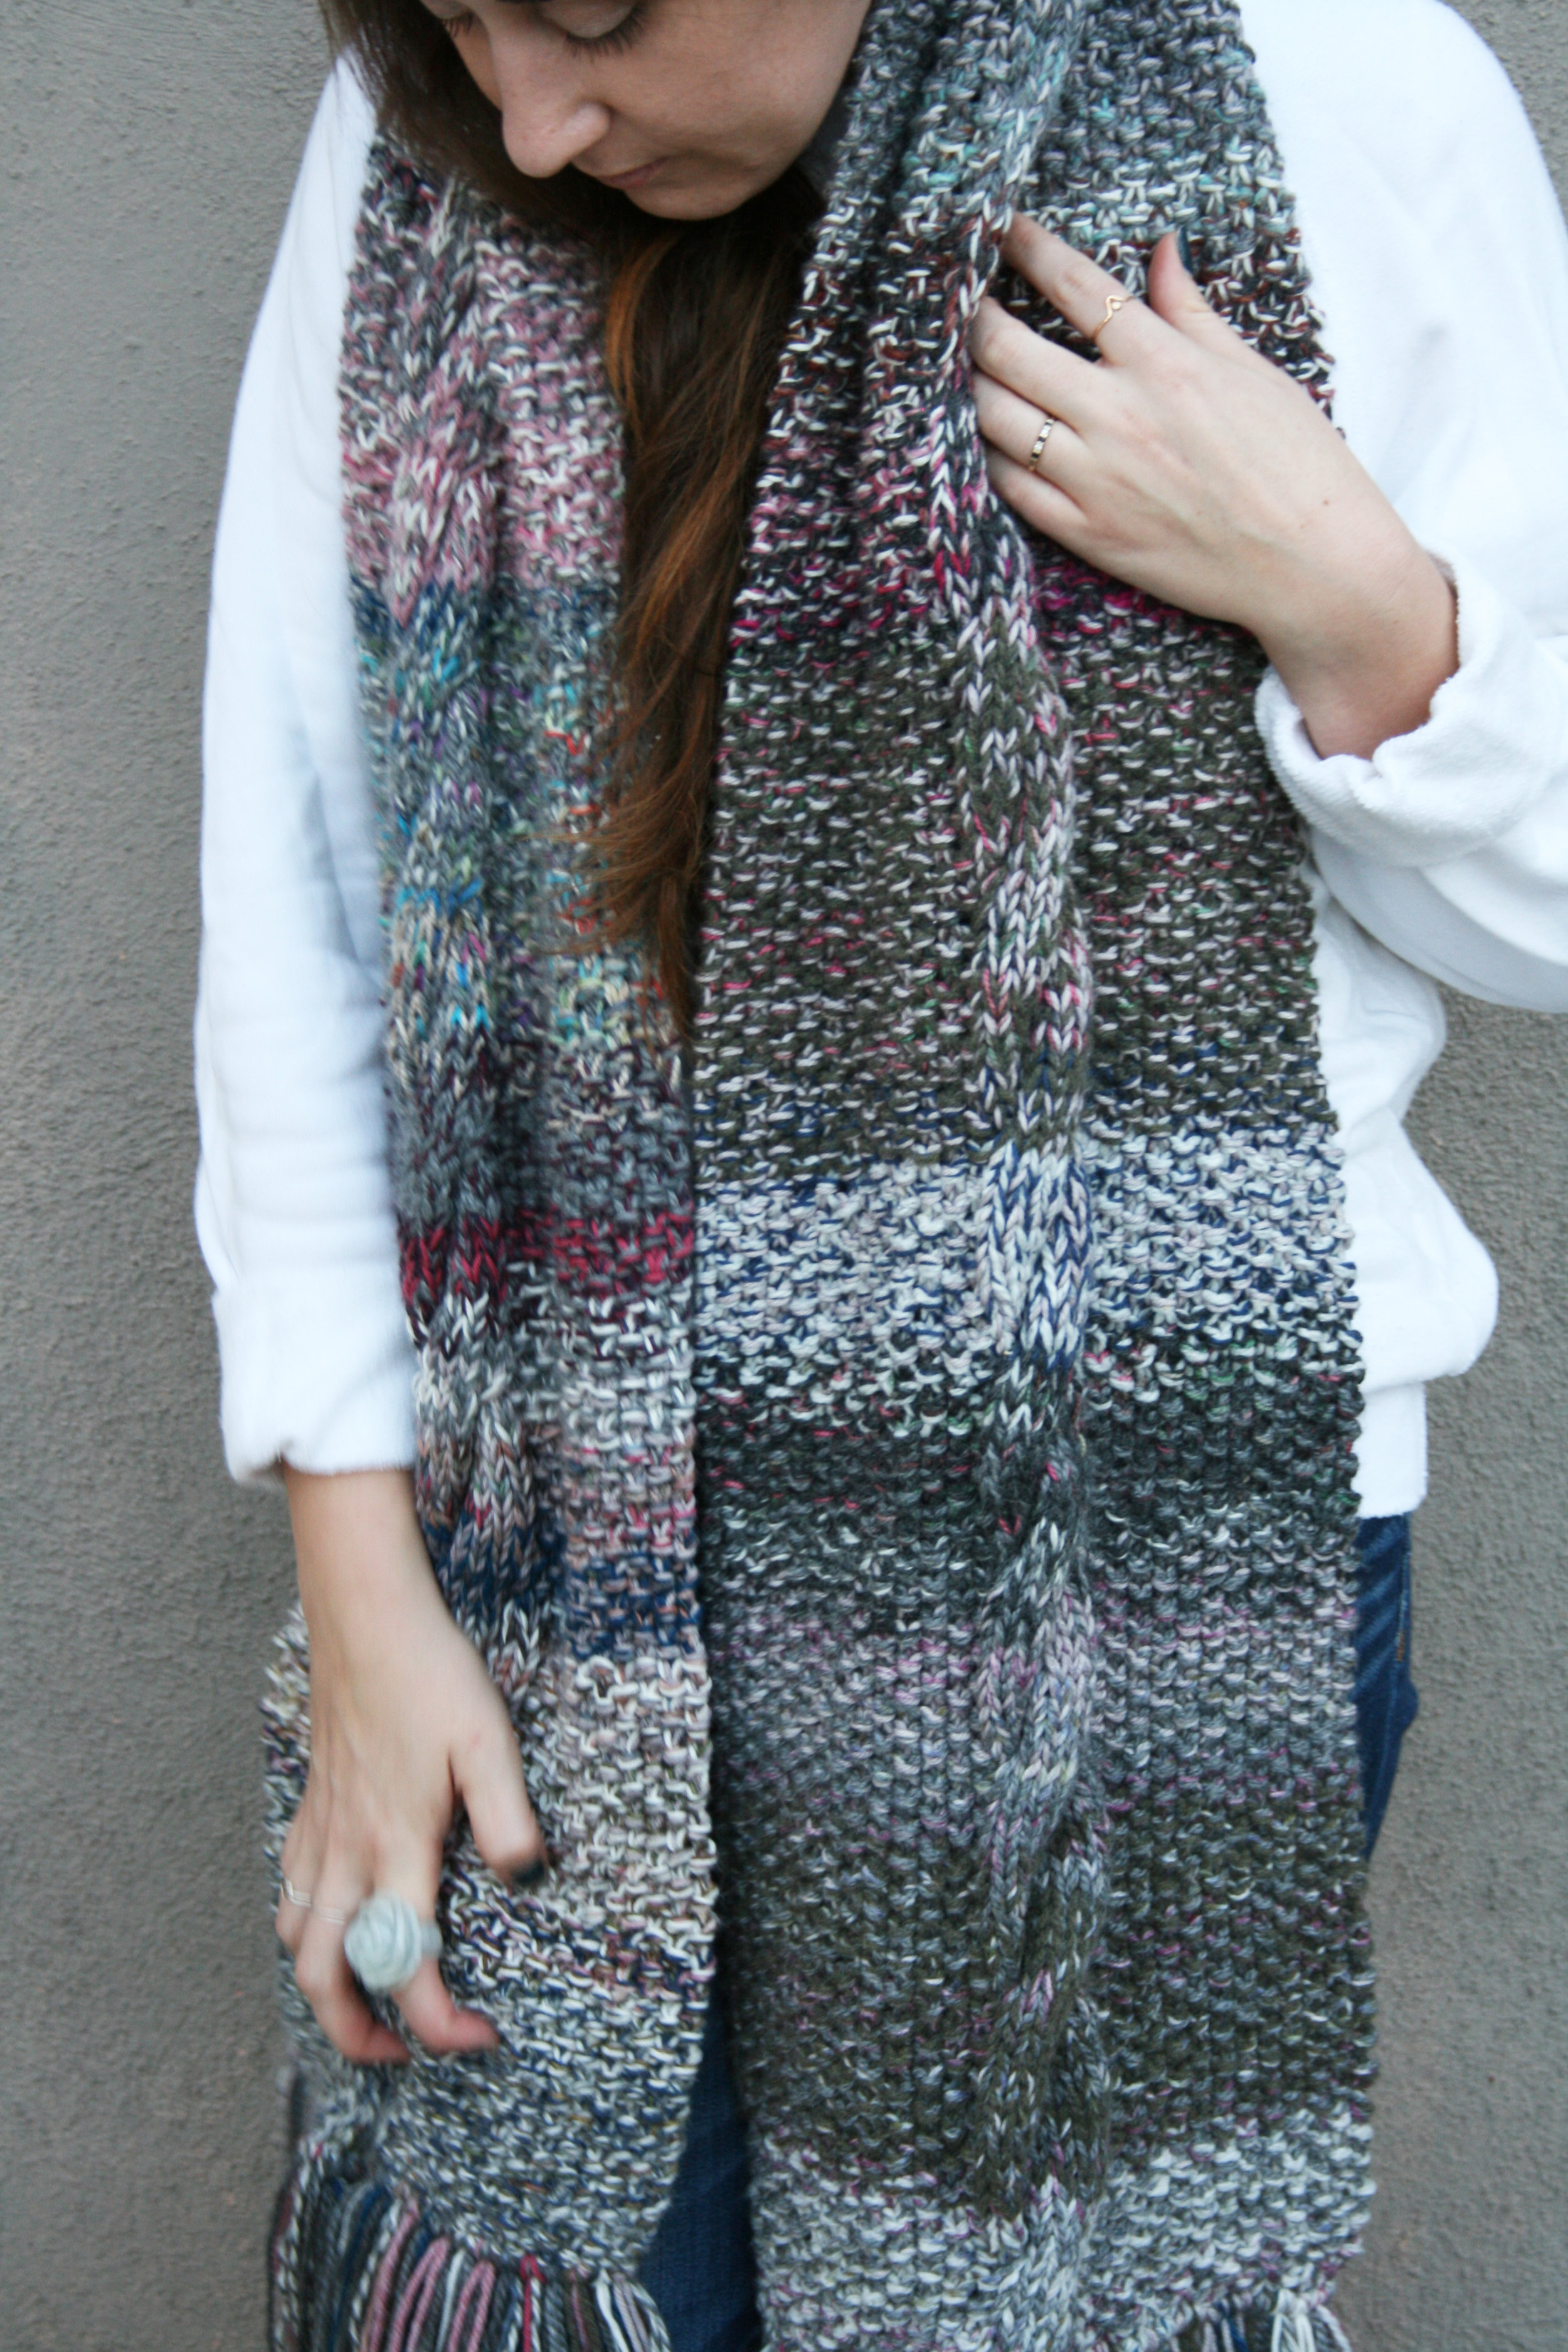 parknknit-cable-scraps-scarf-pattern-knitting-elisemade